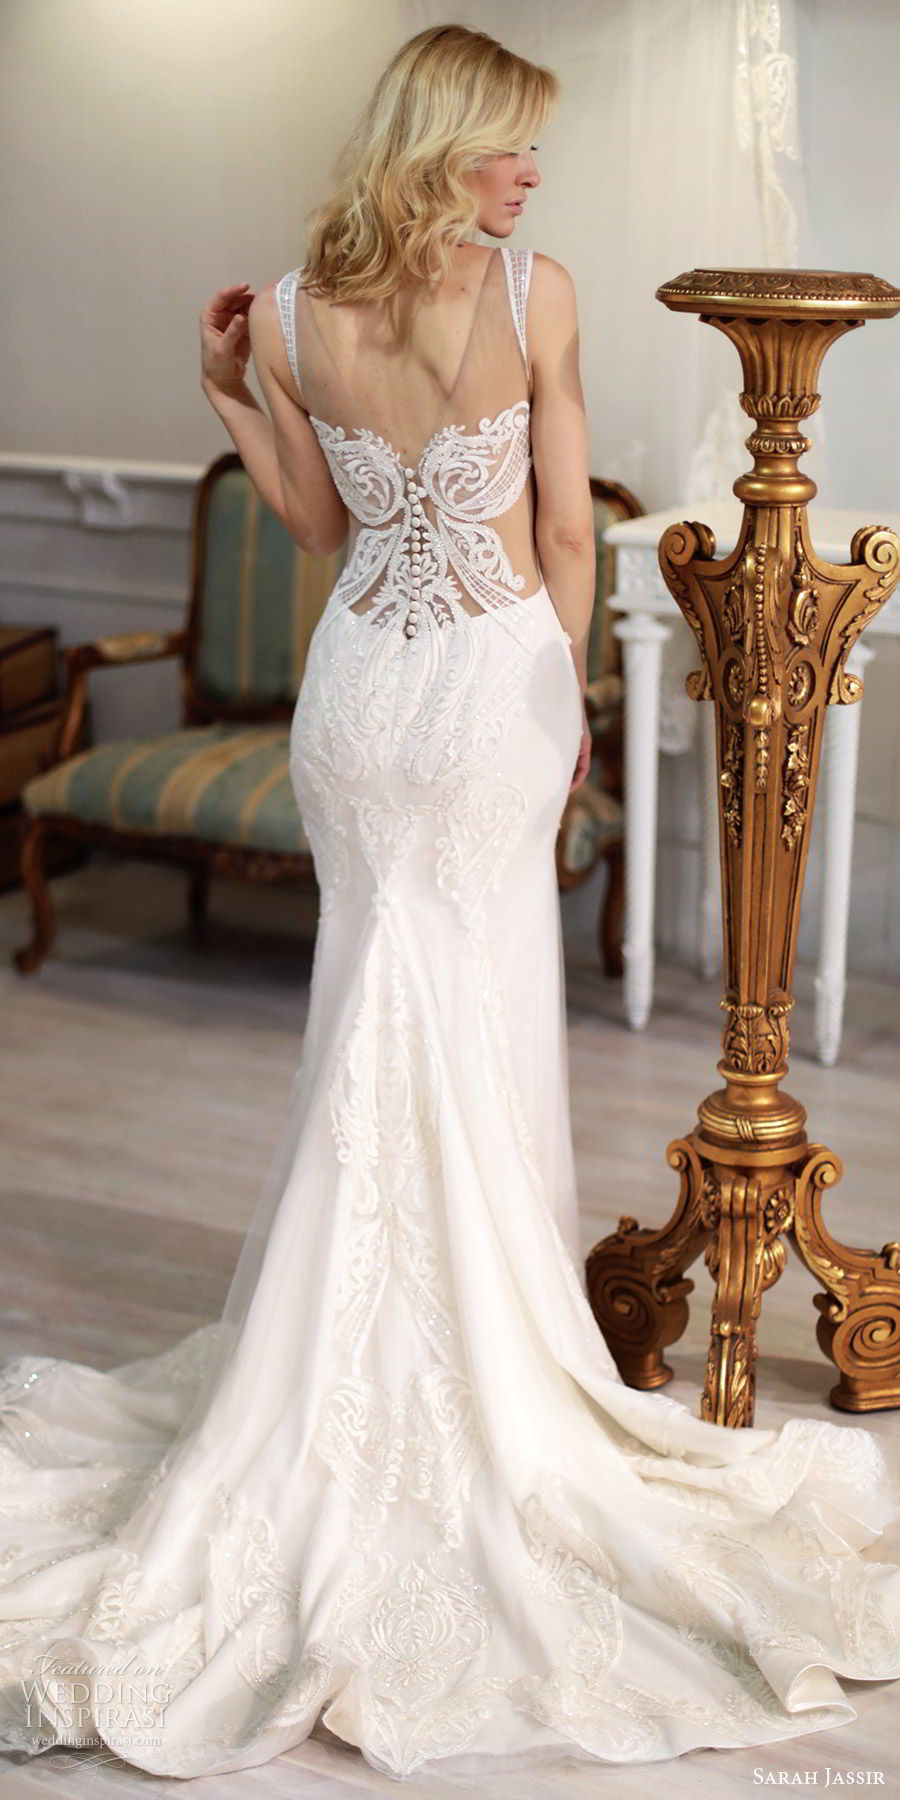 sarah jassir bridal 2018 sleeveless illusion straps sweetheart heavily embellished wedding dress (maya) bv illusion back chapel train elegant